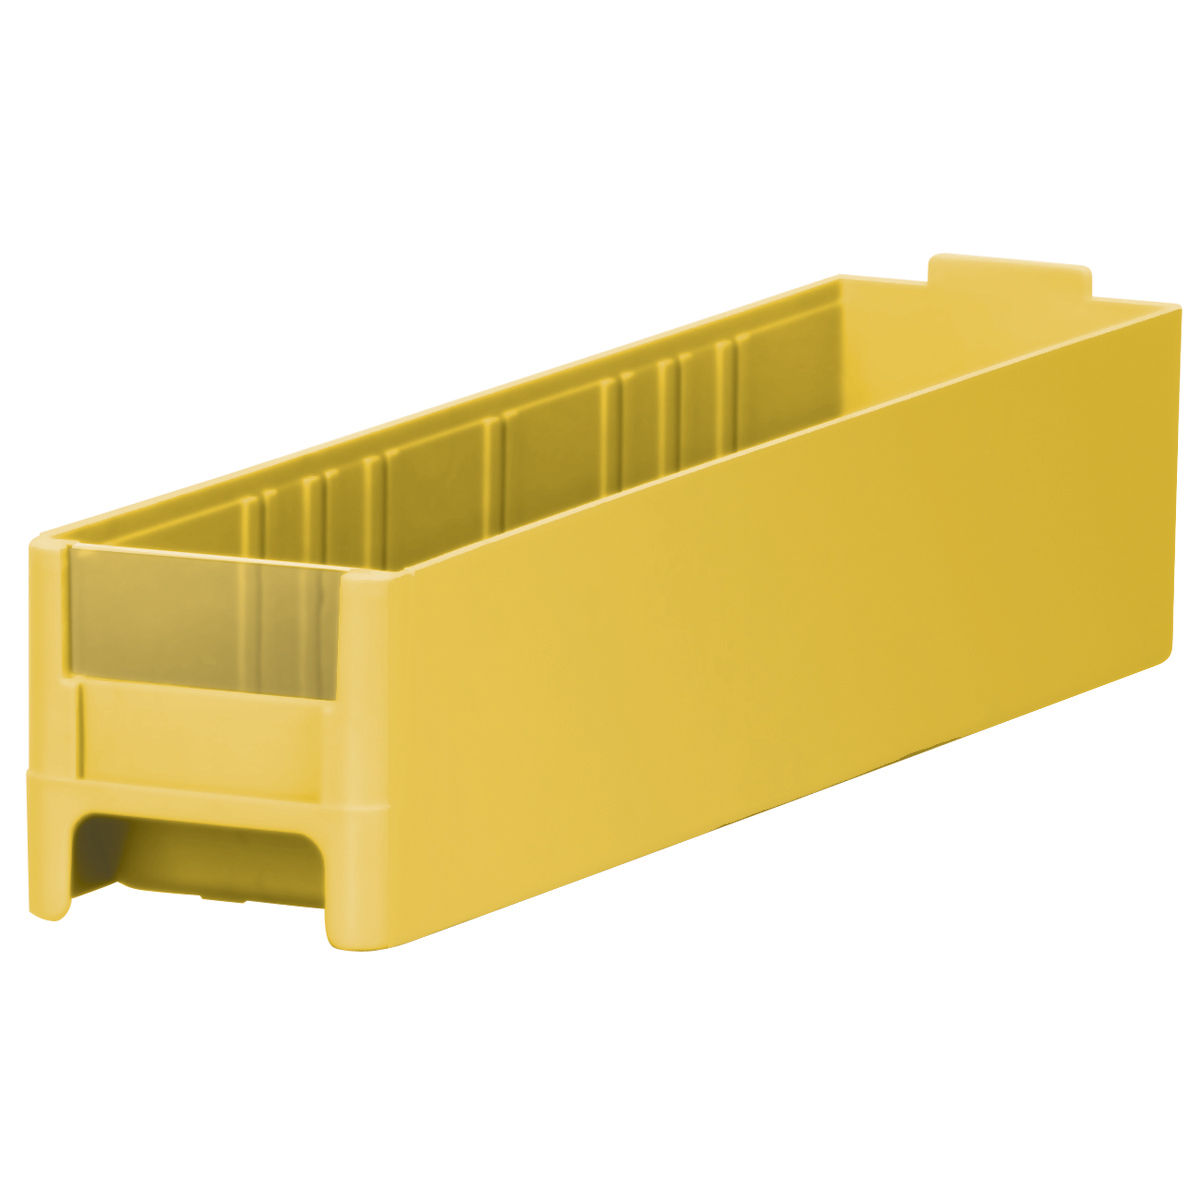 19-Series Cabinet Drawer 2-3/16 x 2-1/16 x 10-9/16, Yellow.  This item sold in carton quantities of 56.